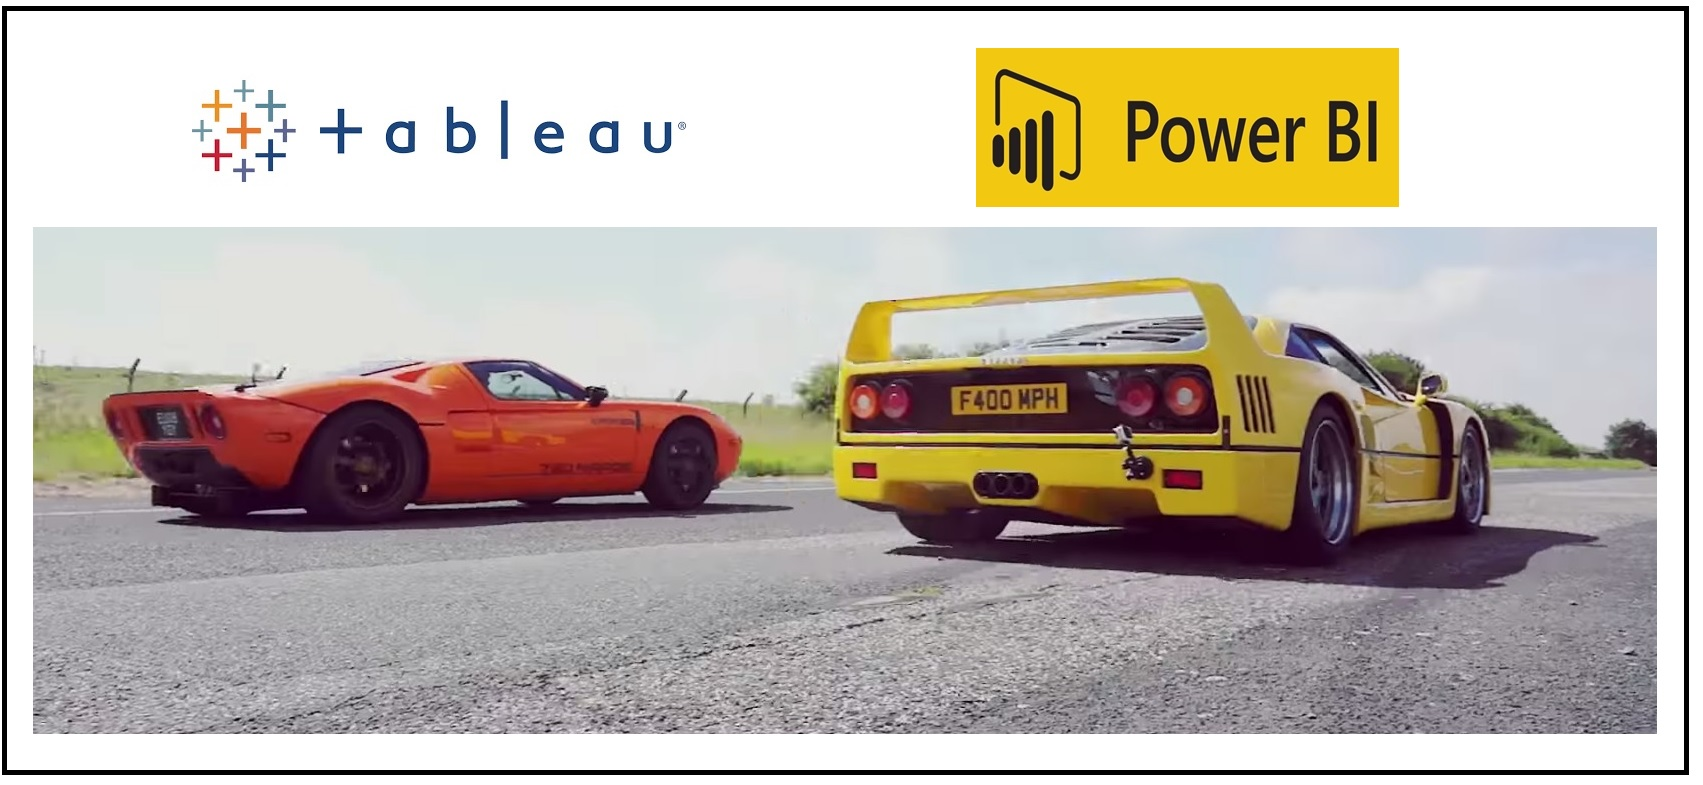 Power BI vs Tableau - thumb image